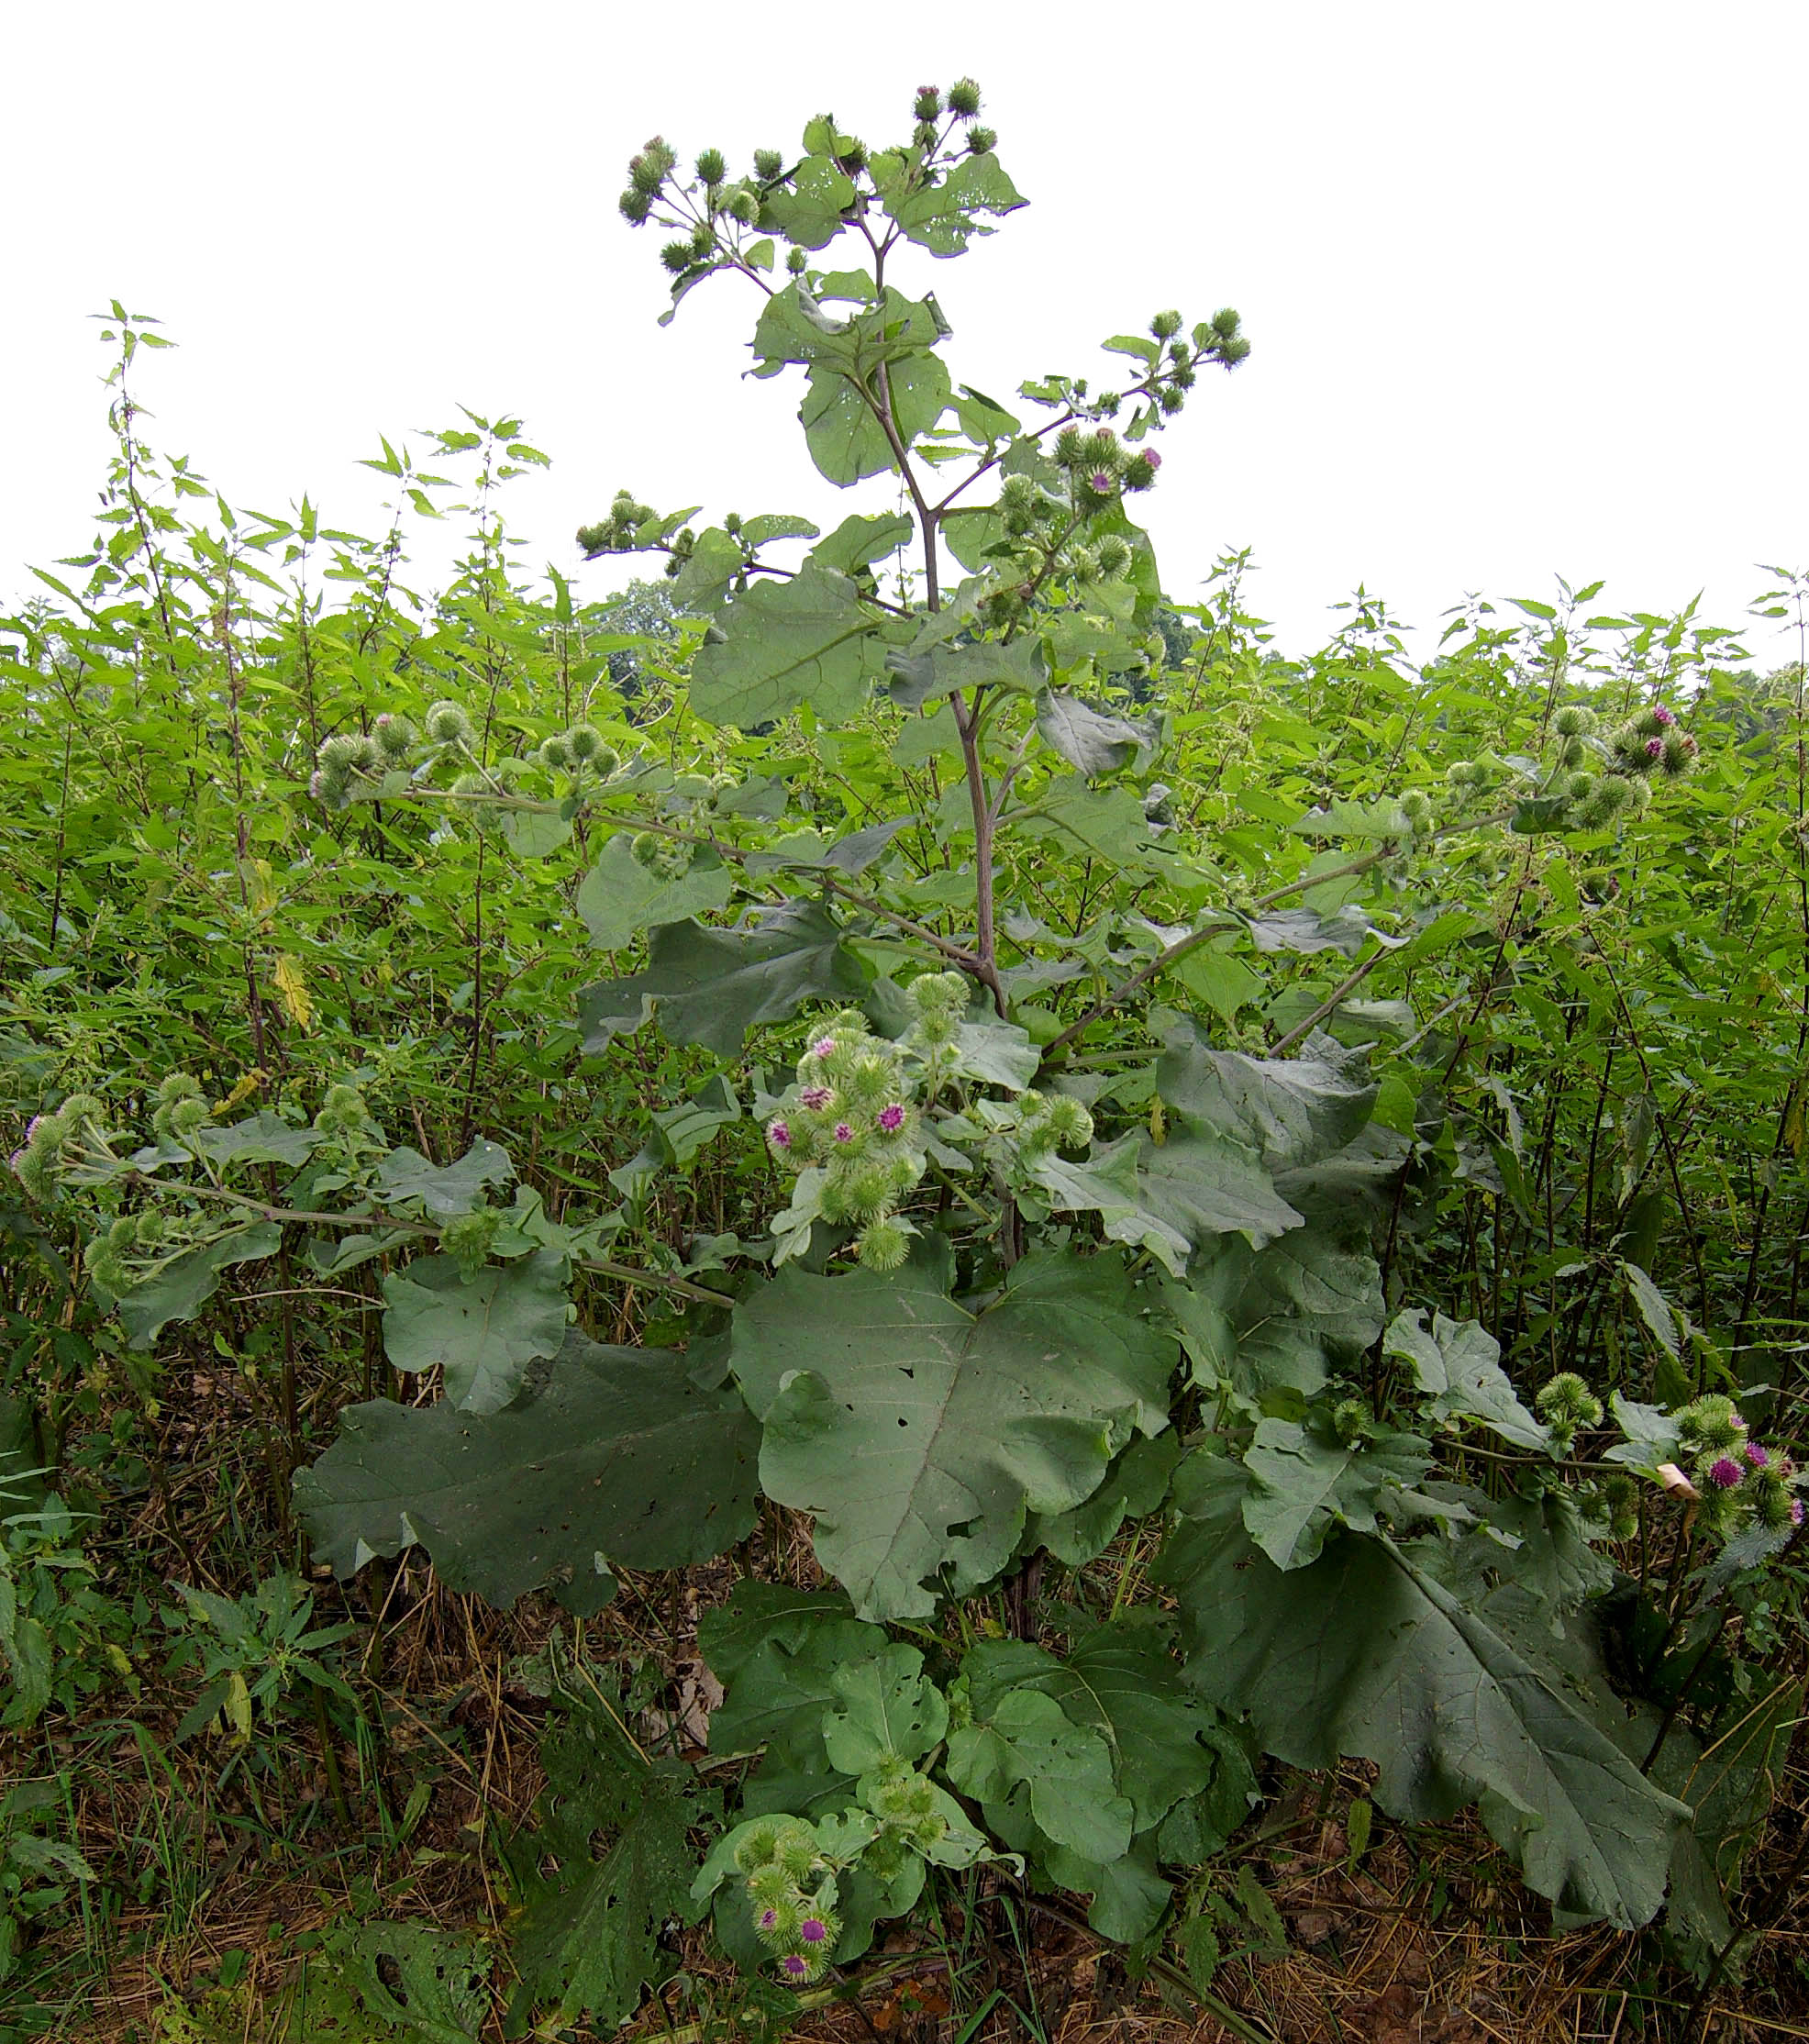 Burdock: Blessing or Burr-den? – Philadelphia Orchard Project